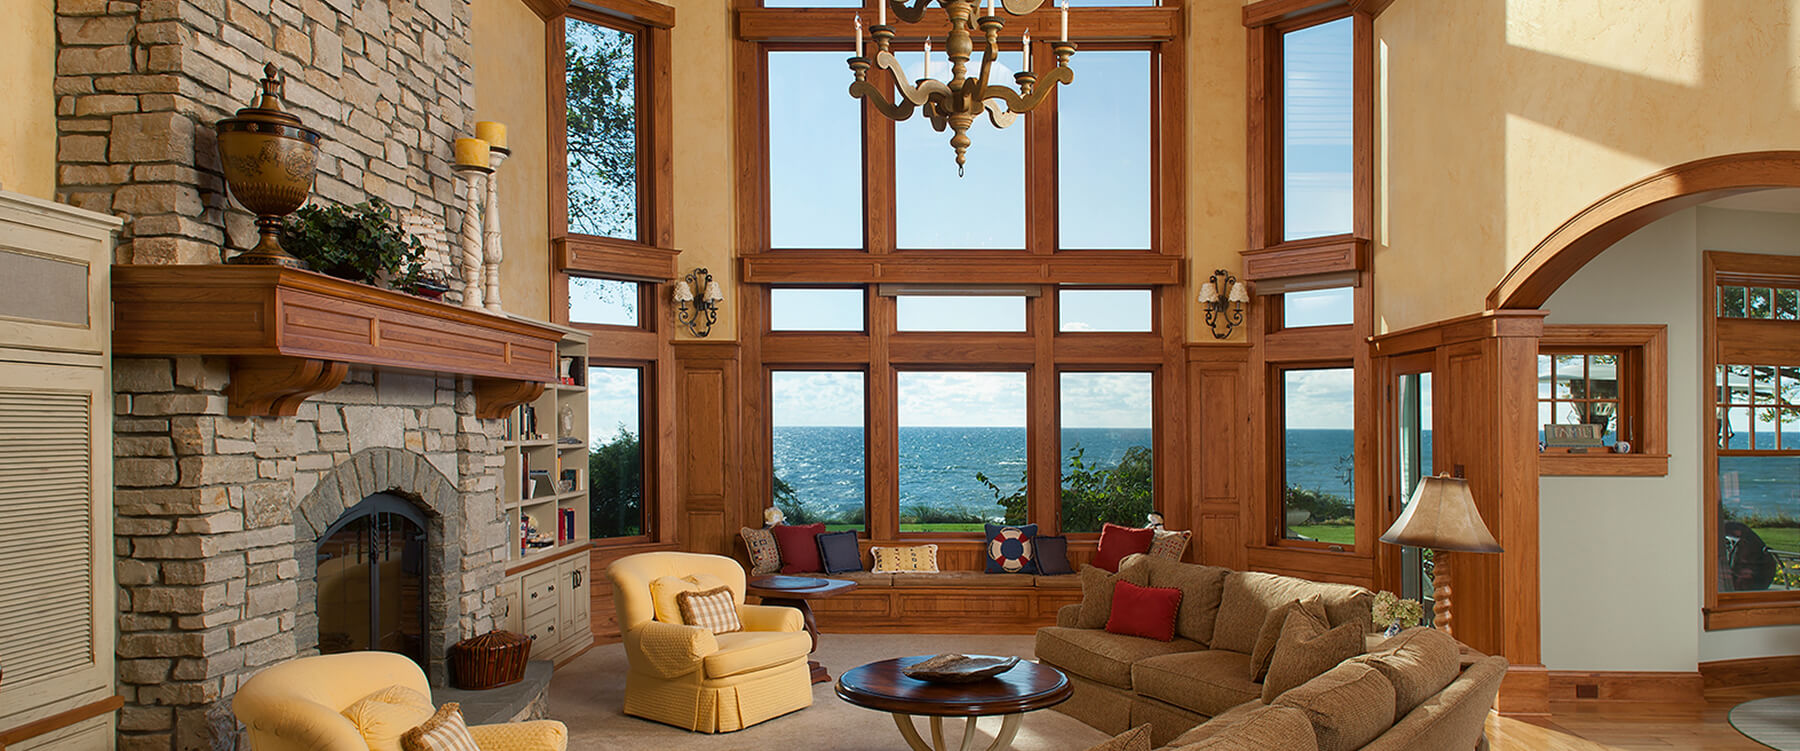 New England style house living room